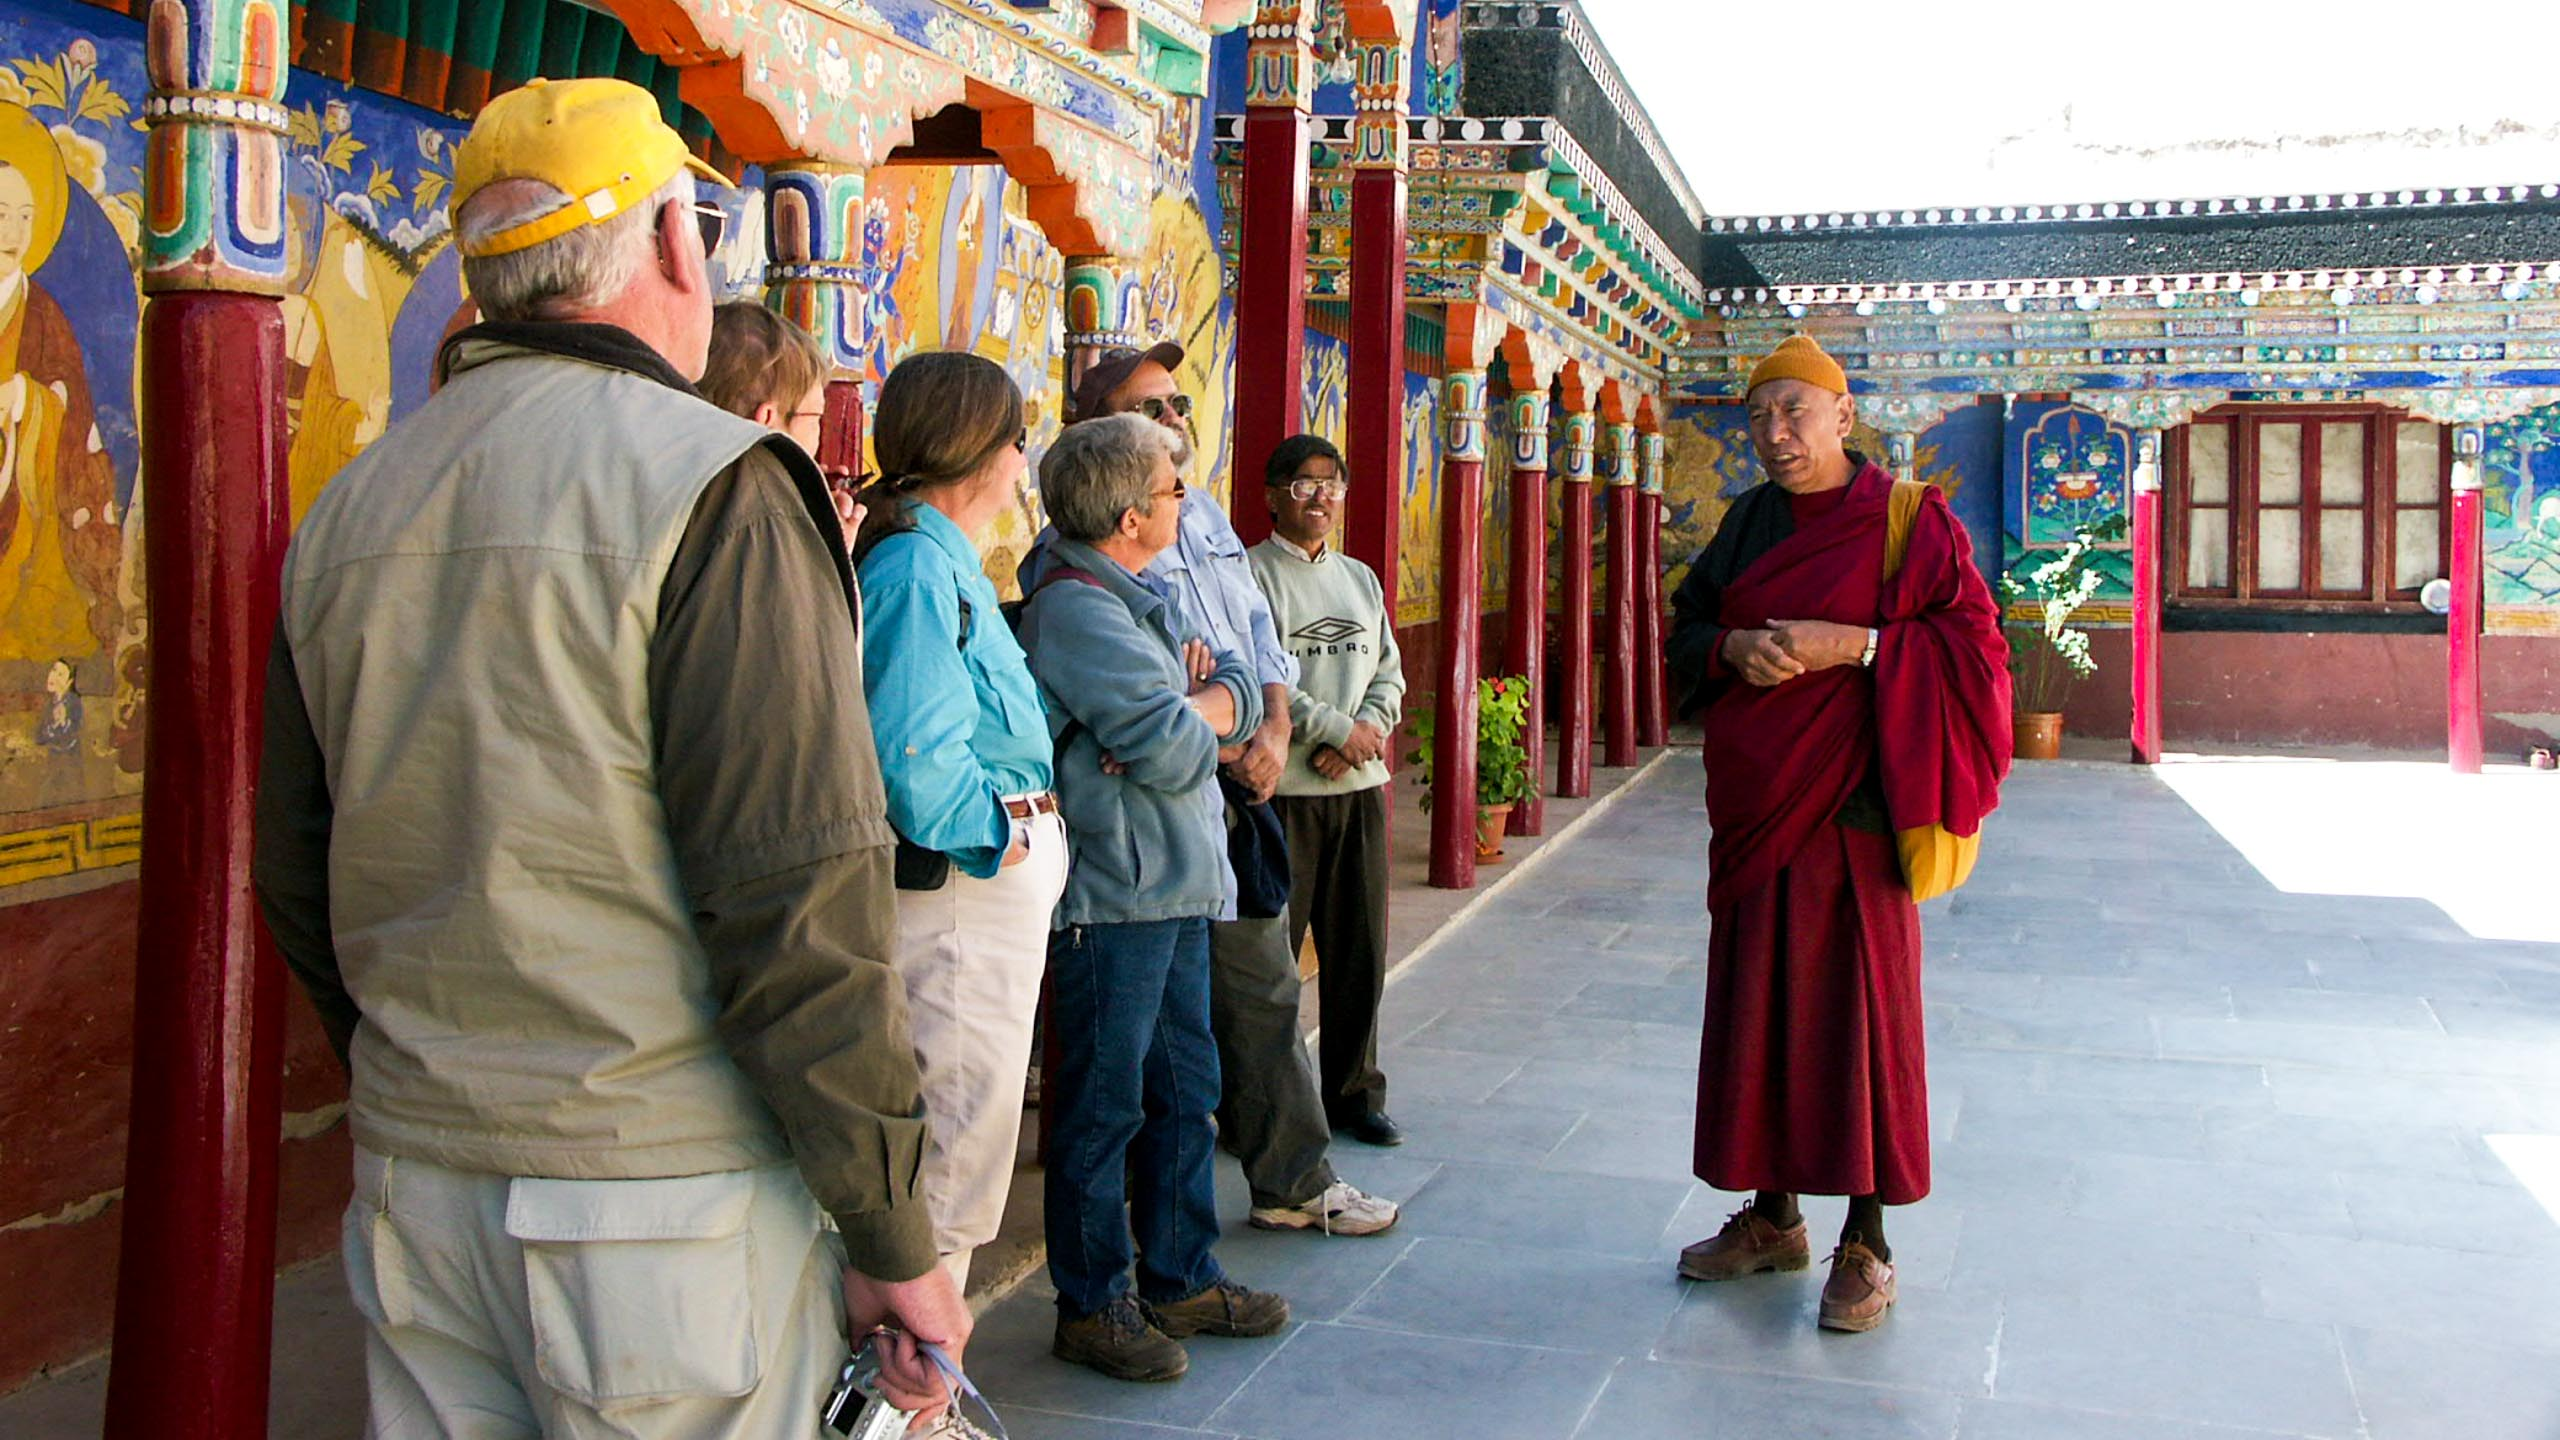 Travel group visits Ladakh monastery